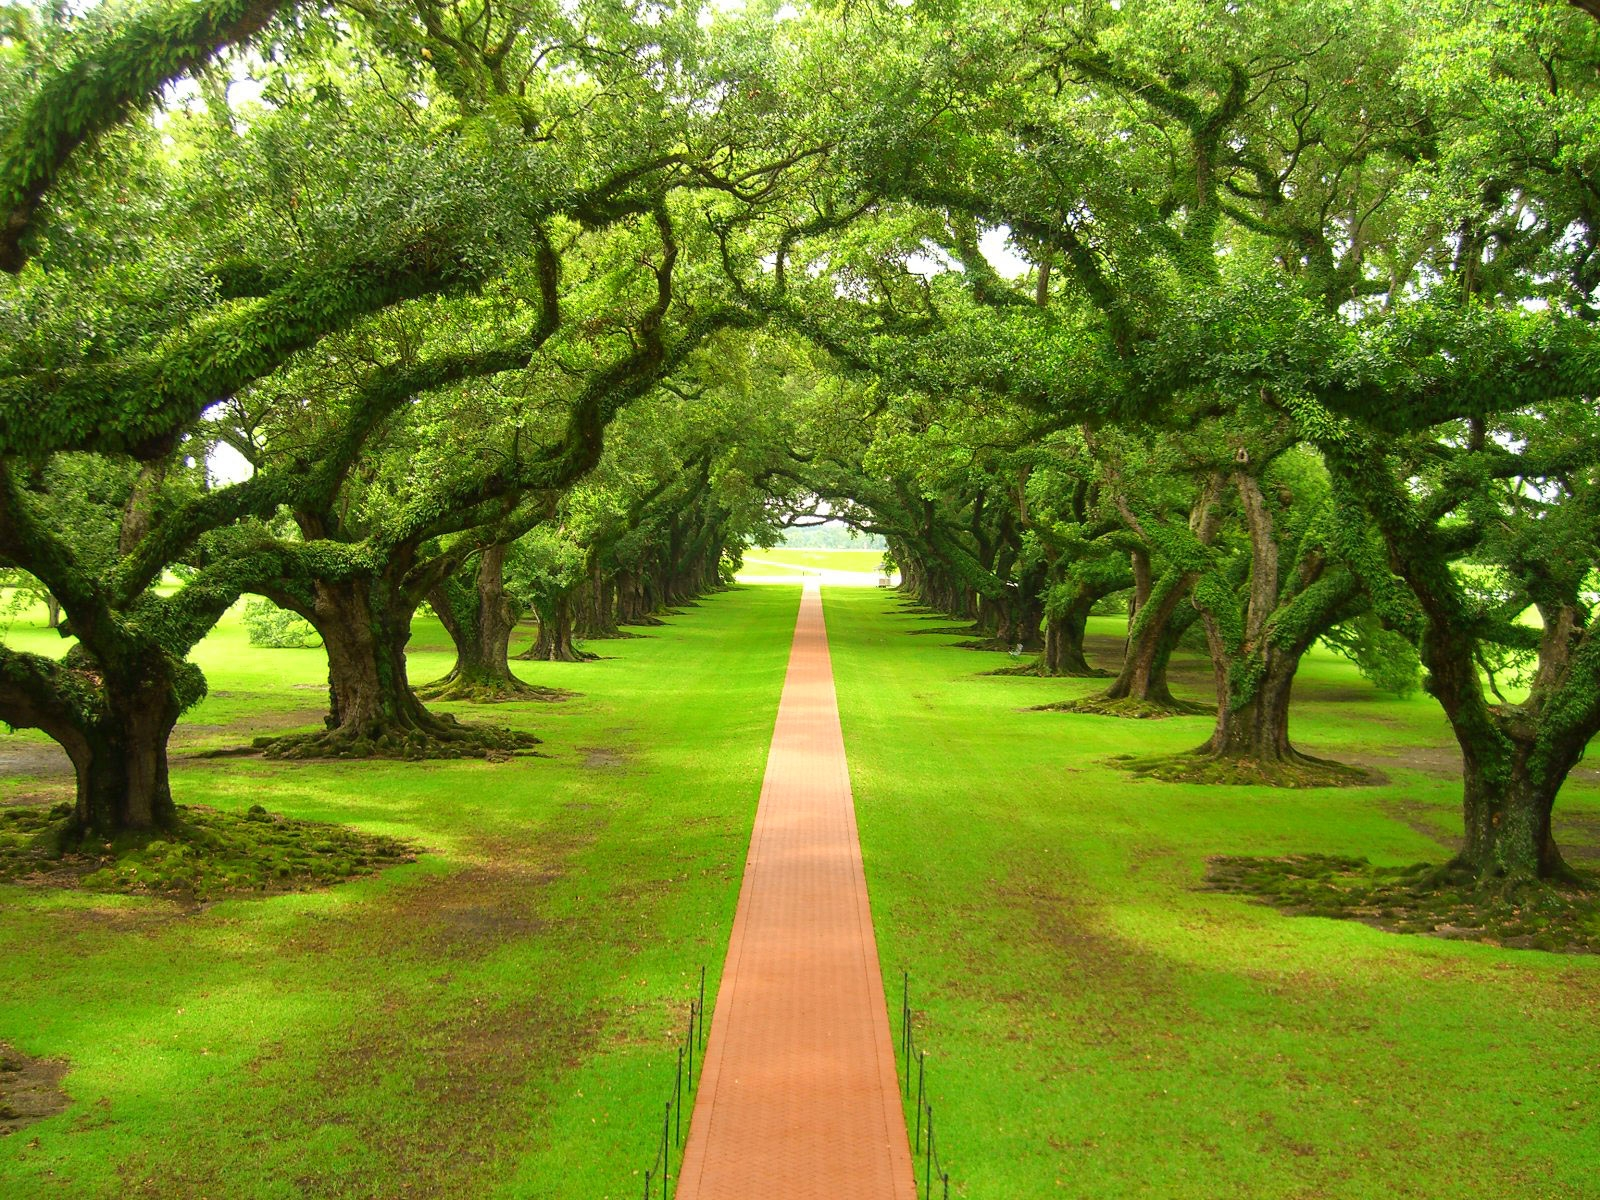 Oak Tree Plantation Desktop and mobile wallpaper Wallippo 1600x1200